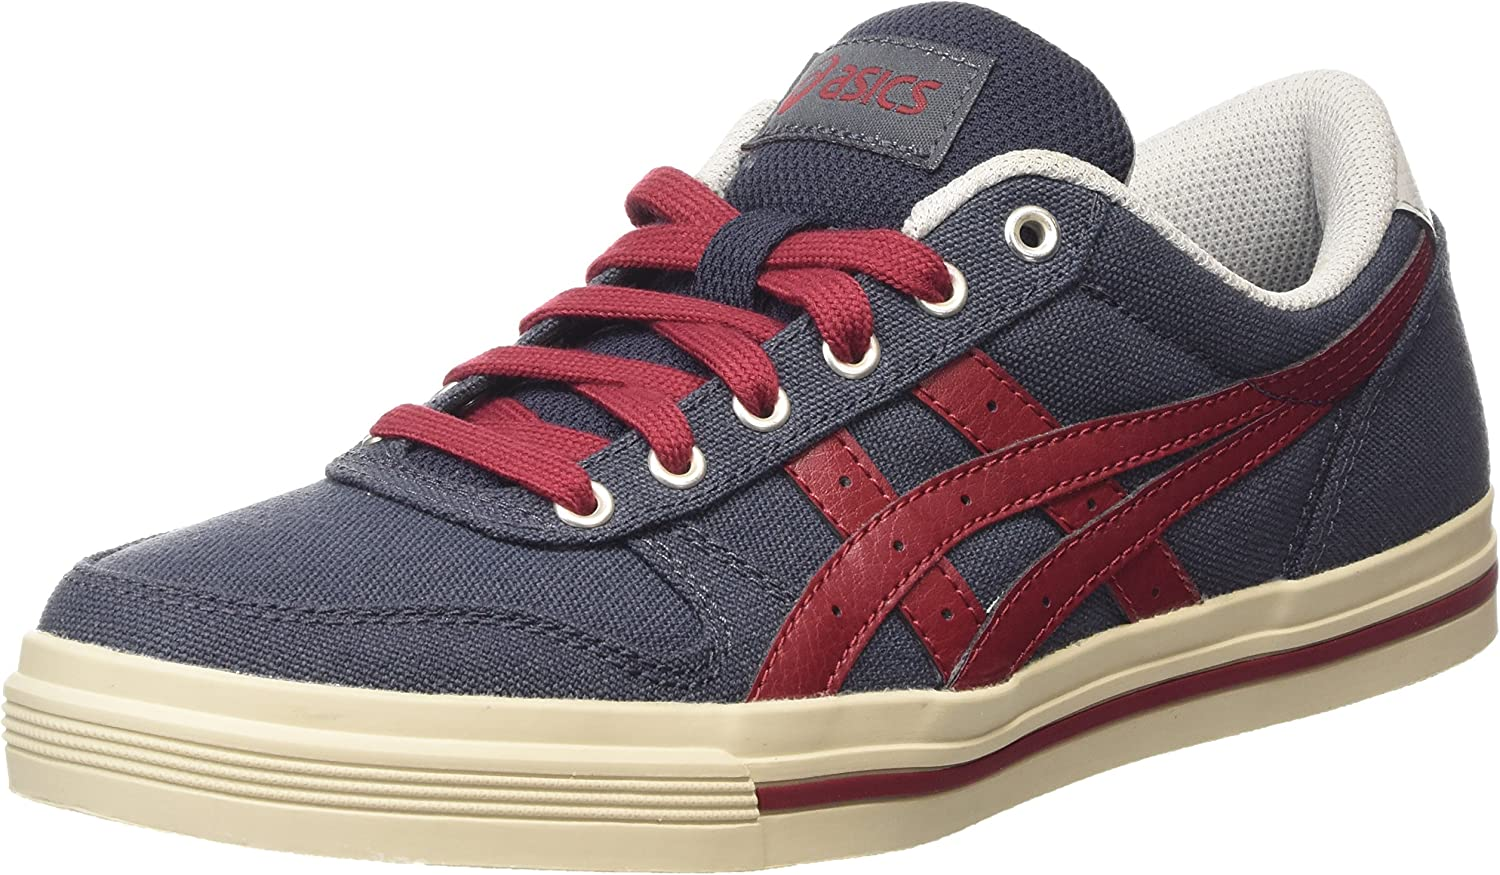 Confidencial Canal Menagerry  ASICS Aaron Low-Top Sneakers: Amazon.co.uk: Shoes & Bags